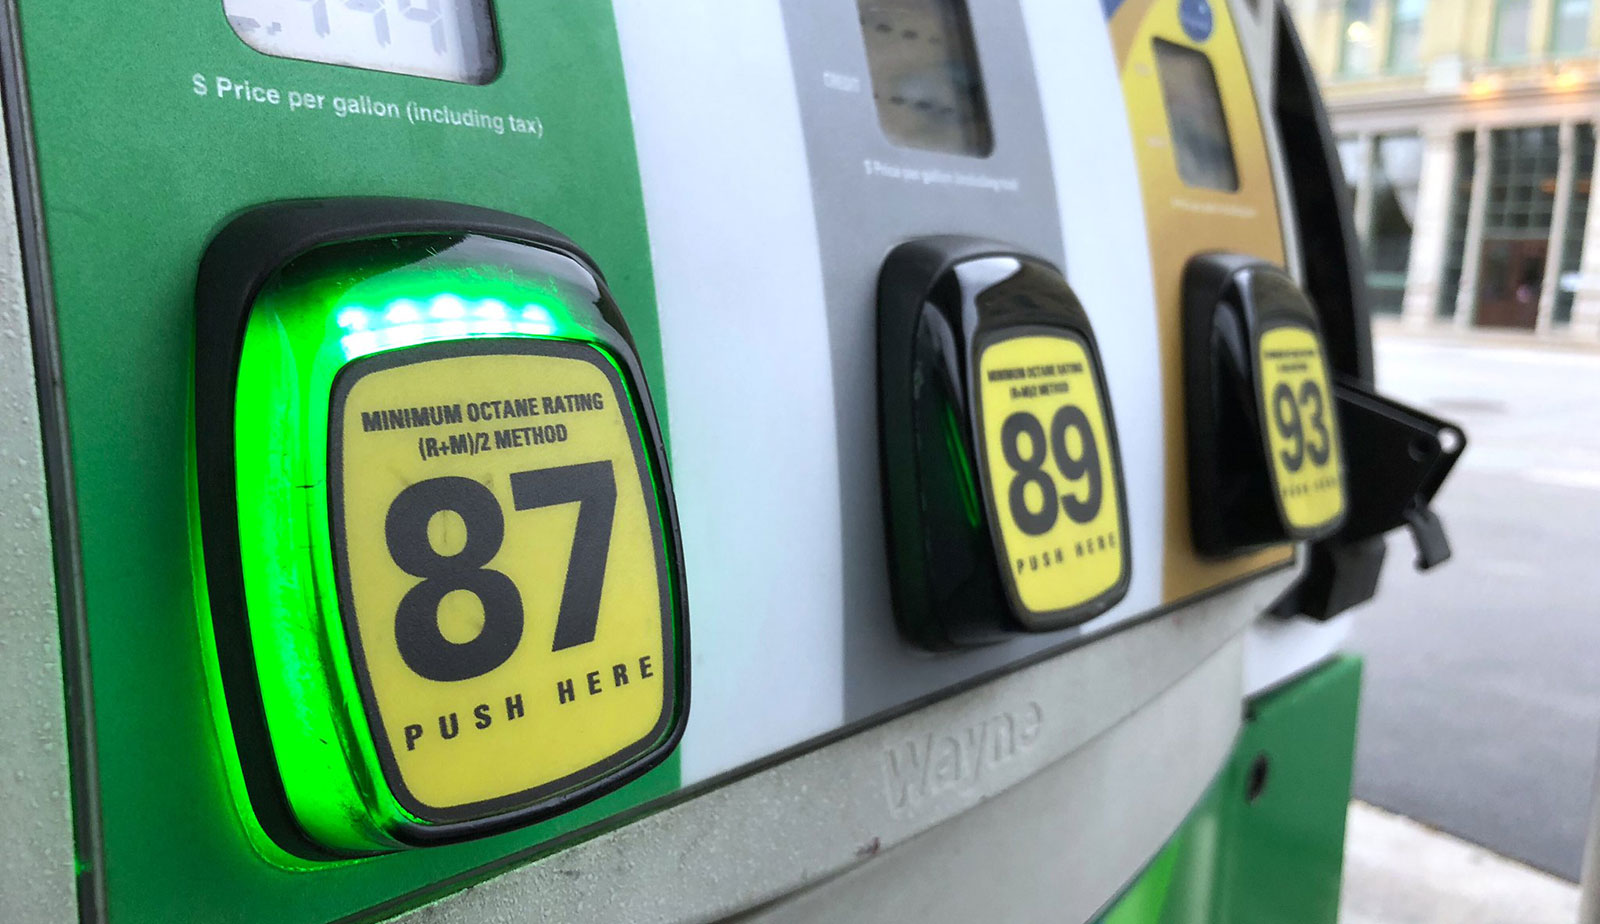 Massachusetts city considers requiring climate warnings on gasoline pumps